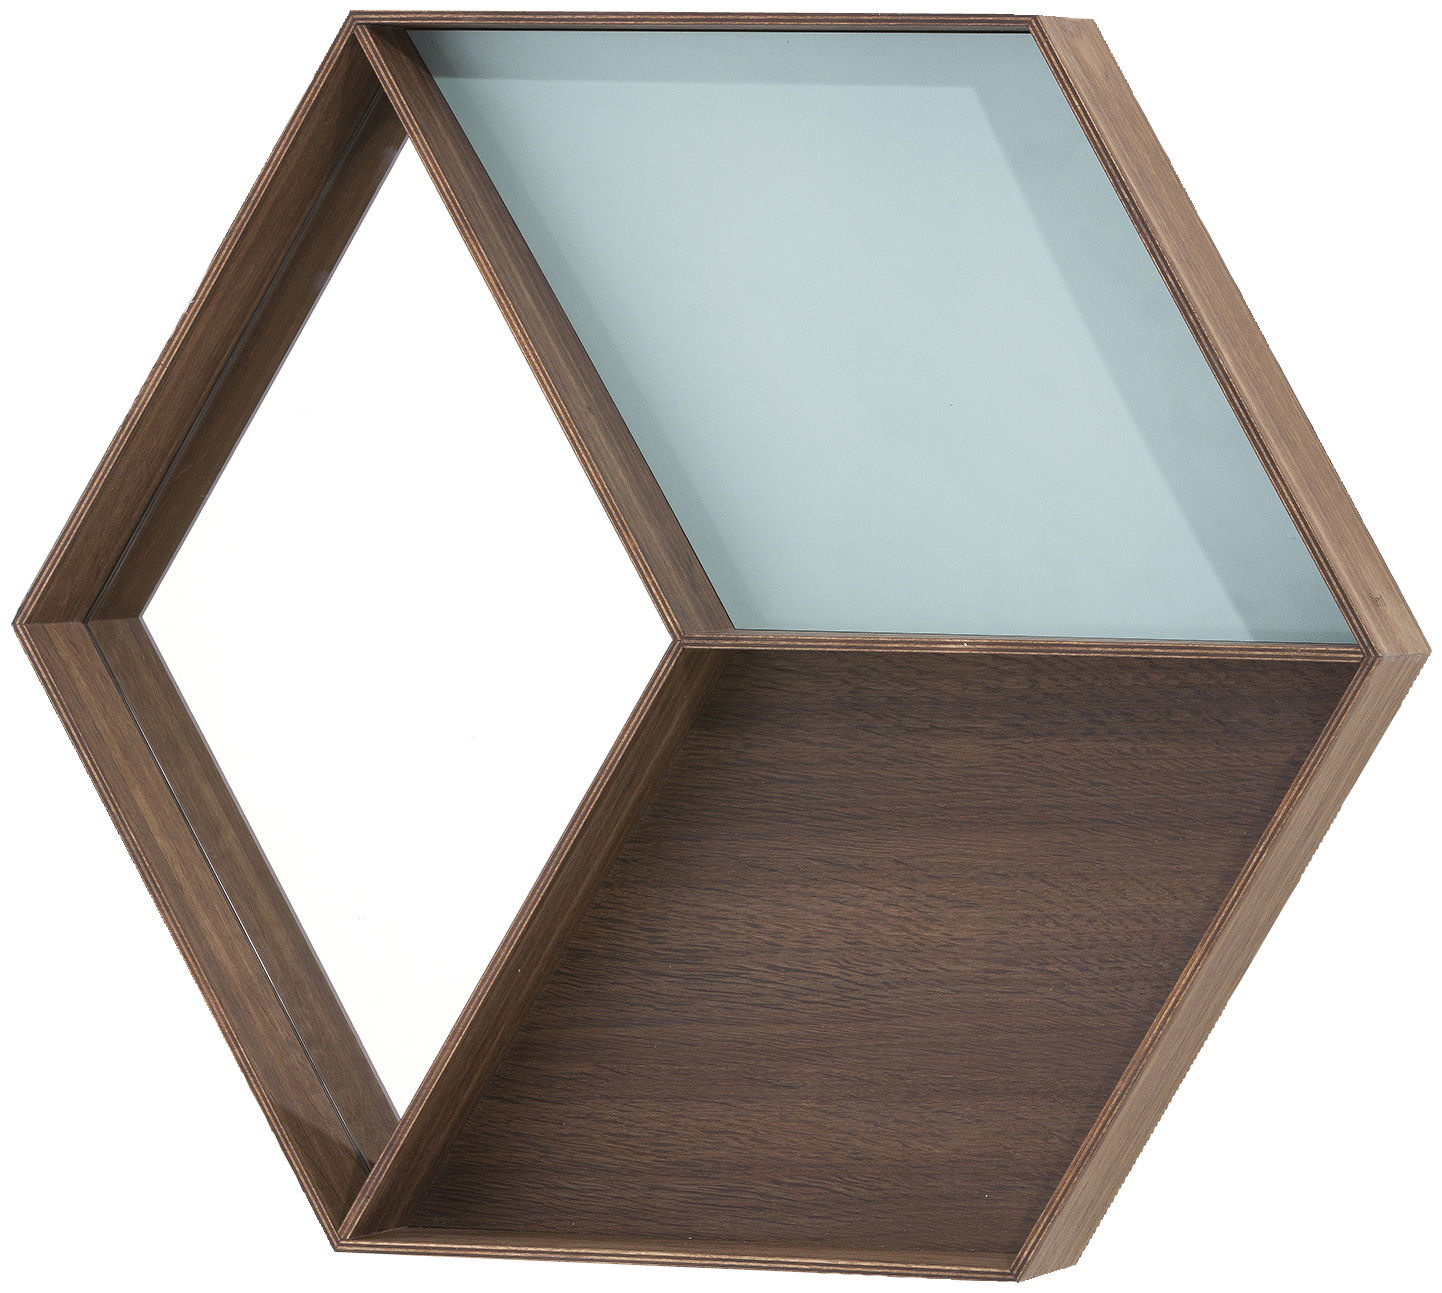 Furniture - Bookcases & Bookshelves - Wall Wonder Wall mirror by Ferm Living - Smoked oak / Blue - Brass, Painted laminate, Smoked oak